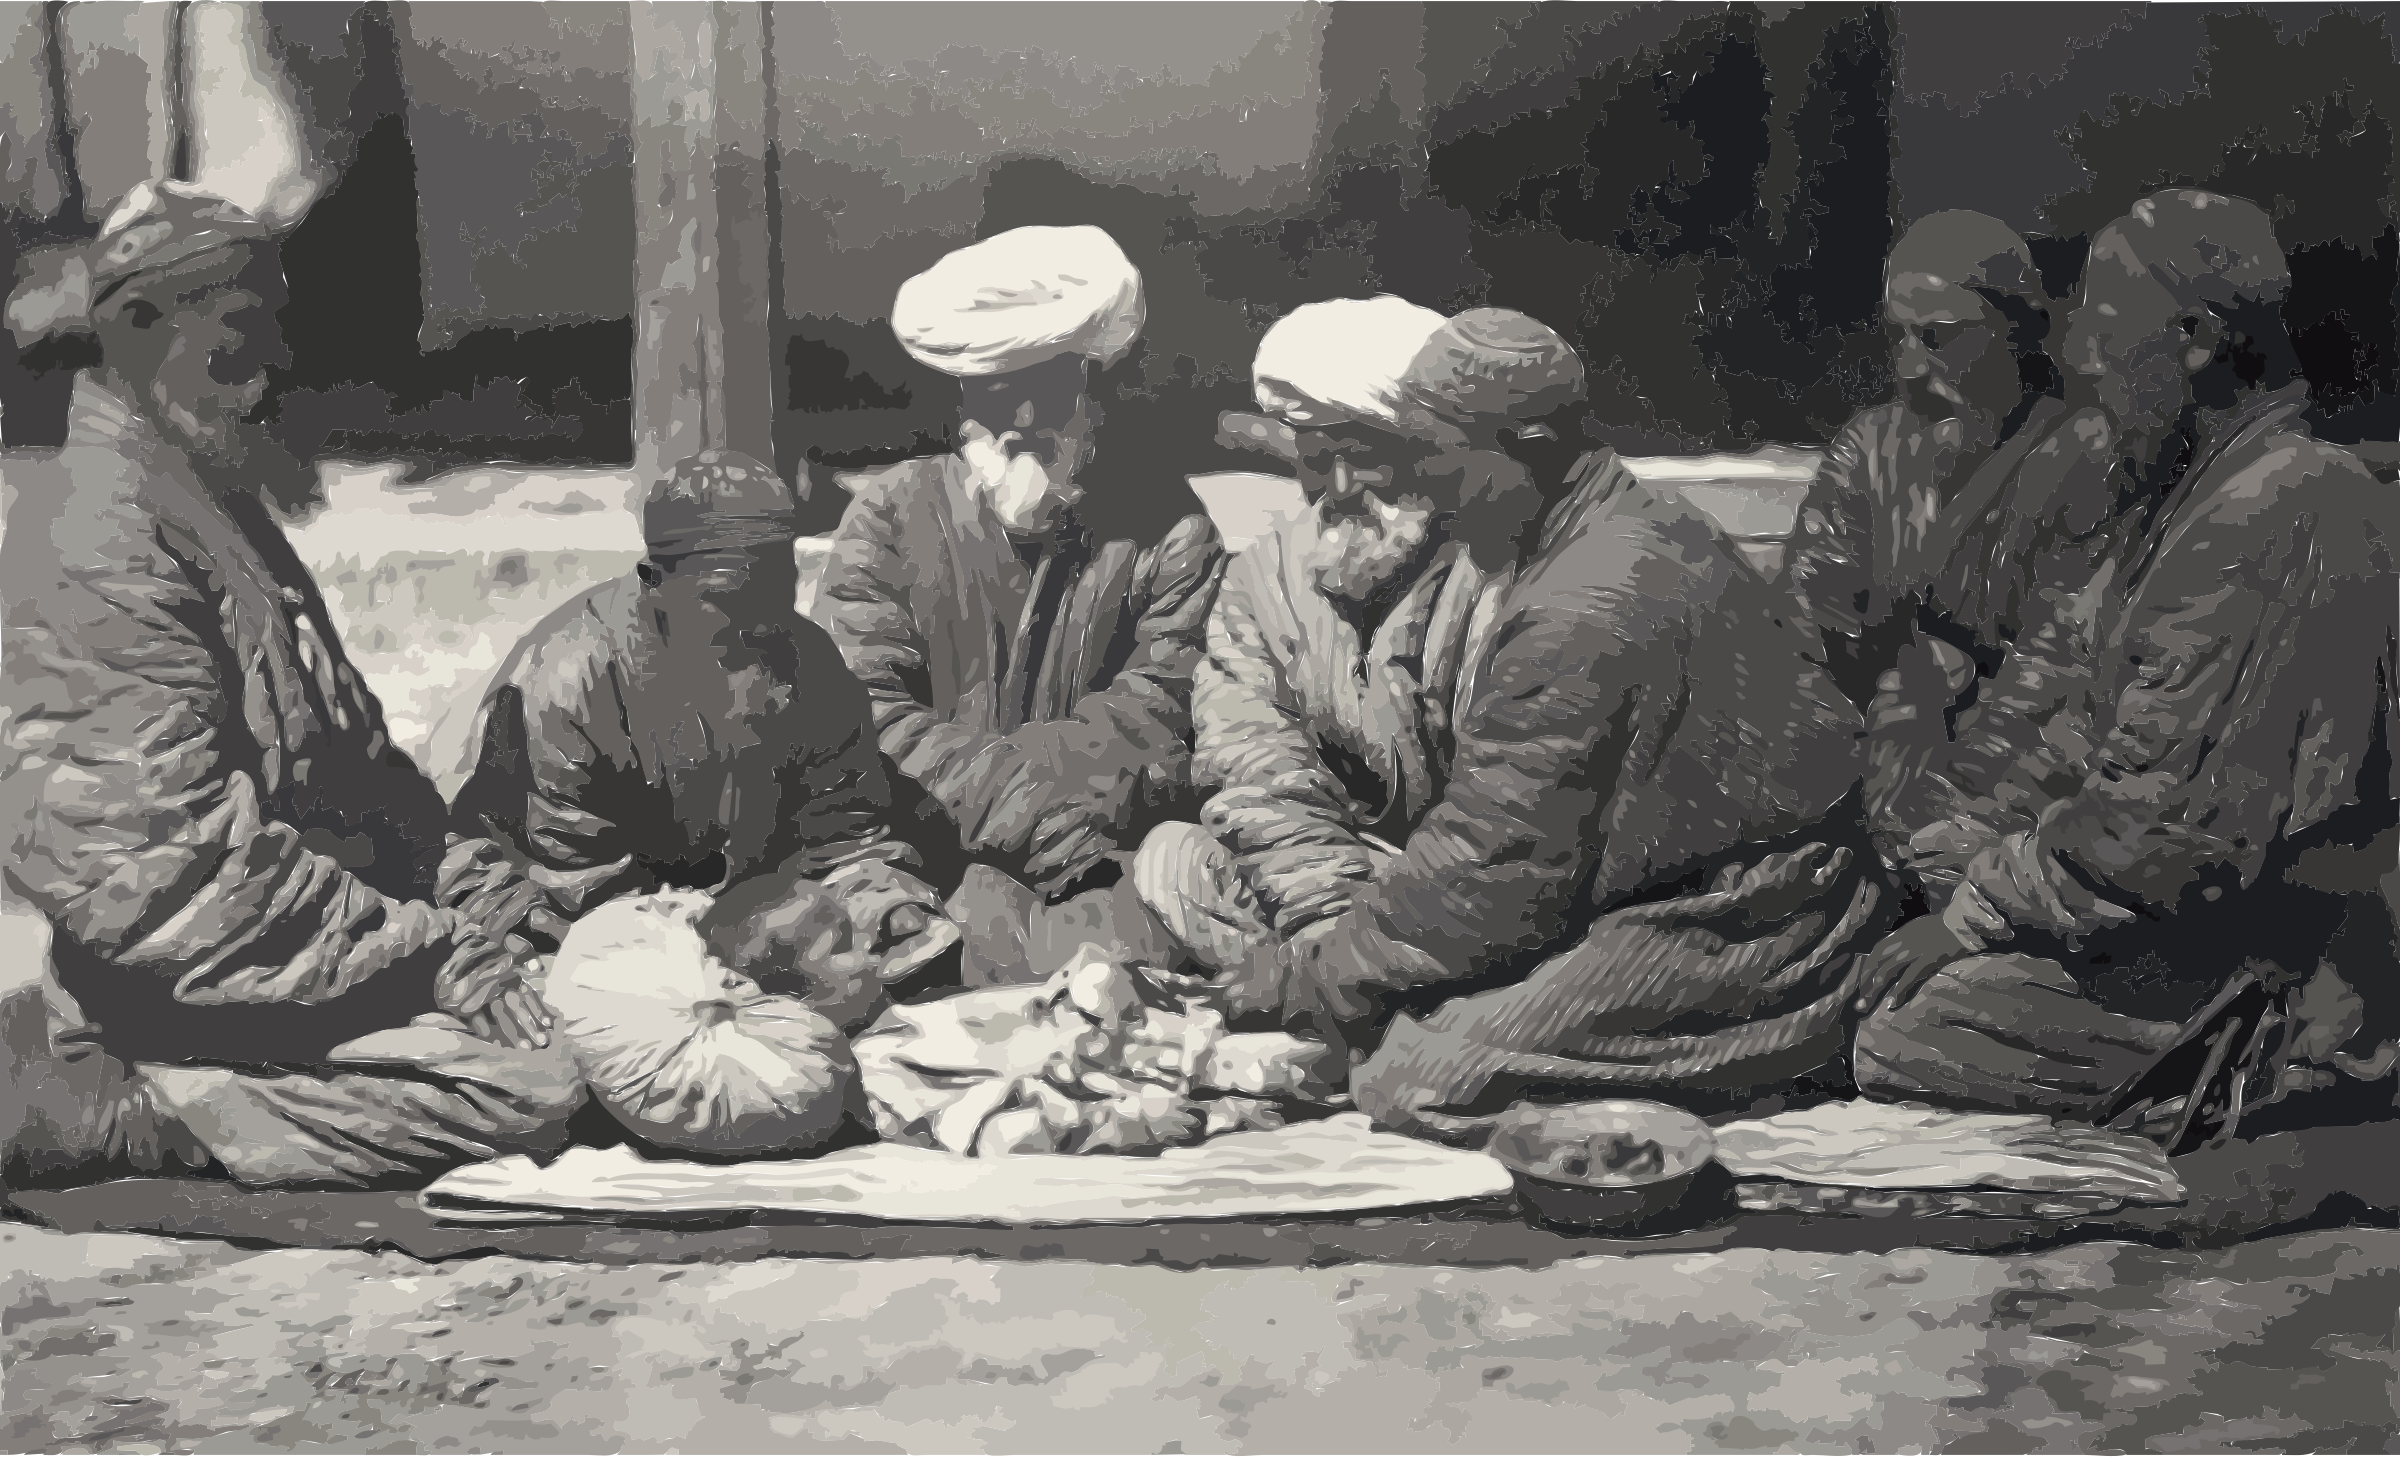 Circumcision central Asia2 by 3wt1f5+ceucmedqy949o